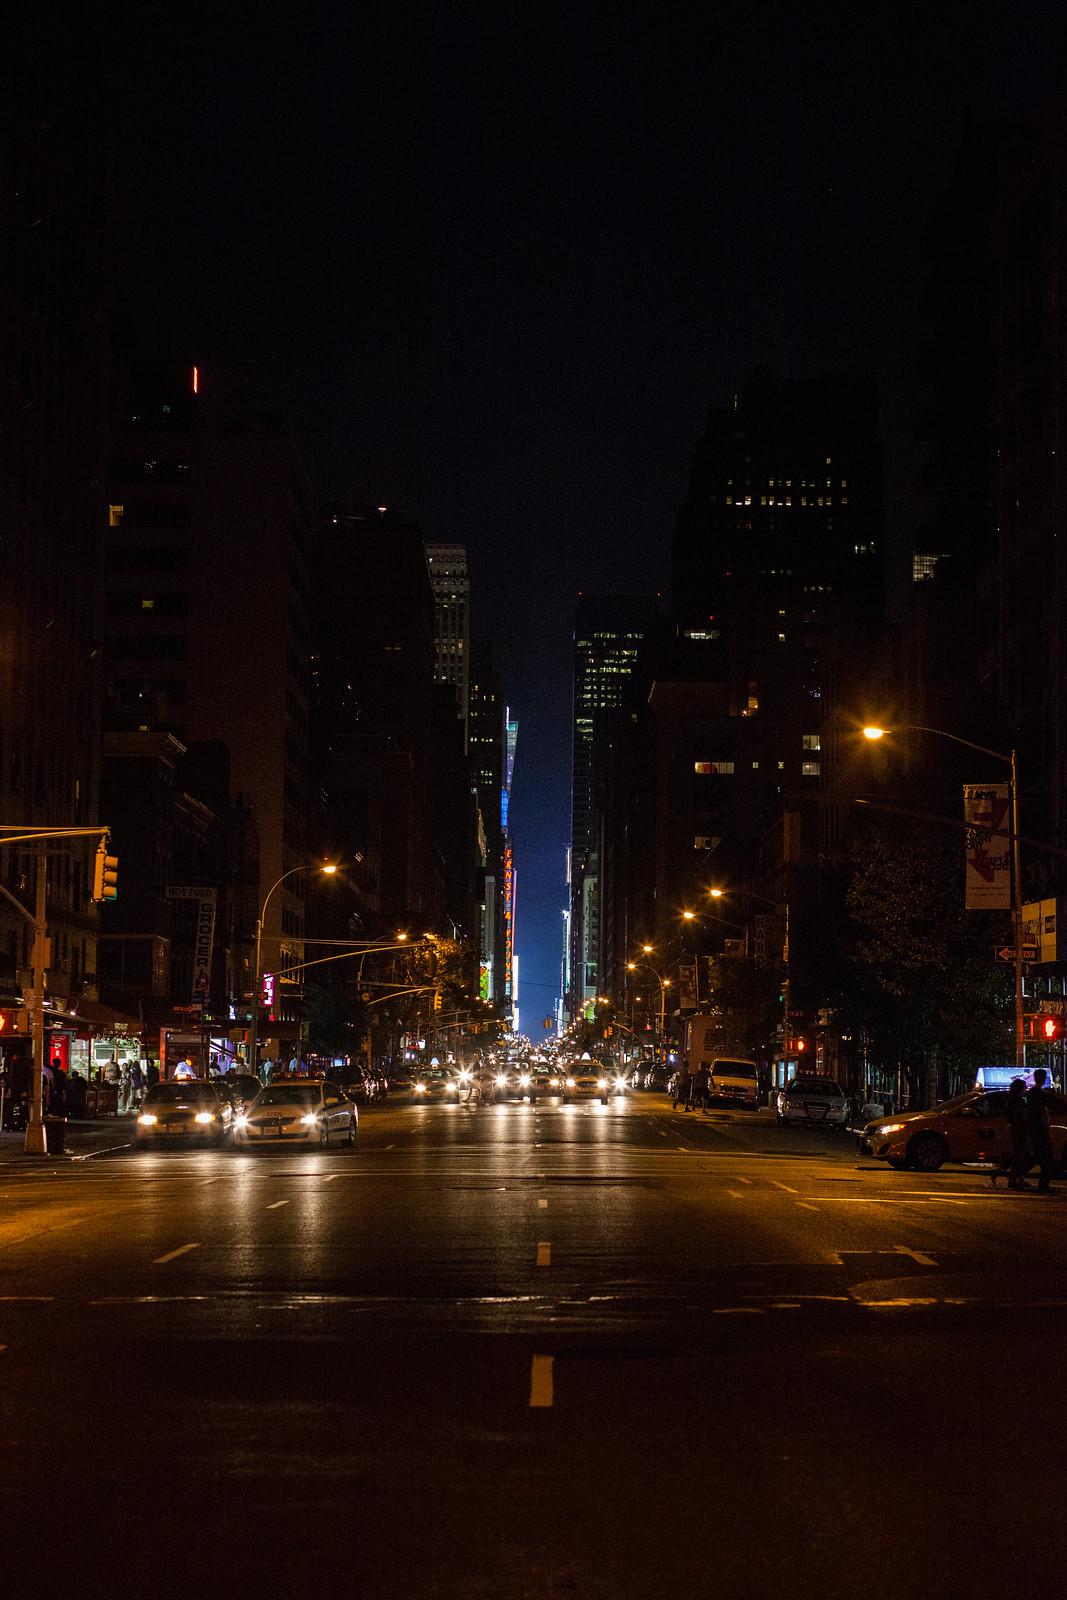 7th Avenue towards Times Square by wwward0